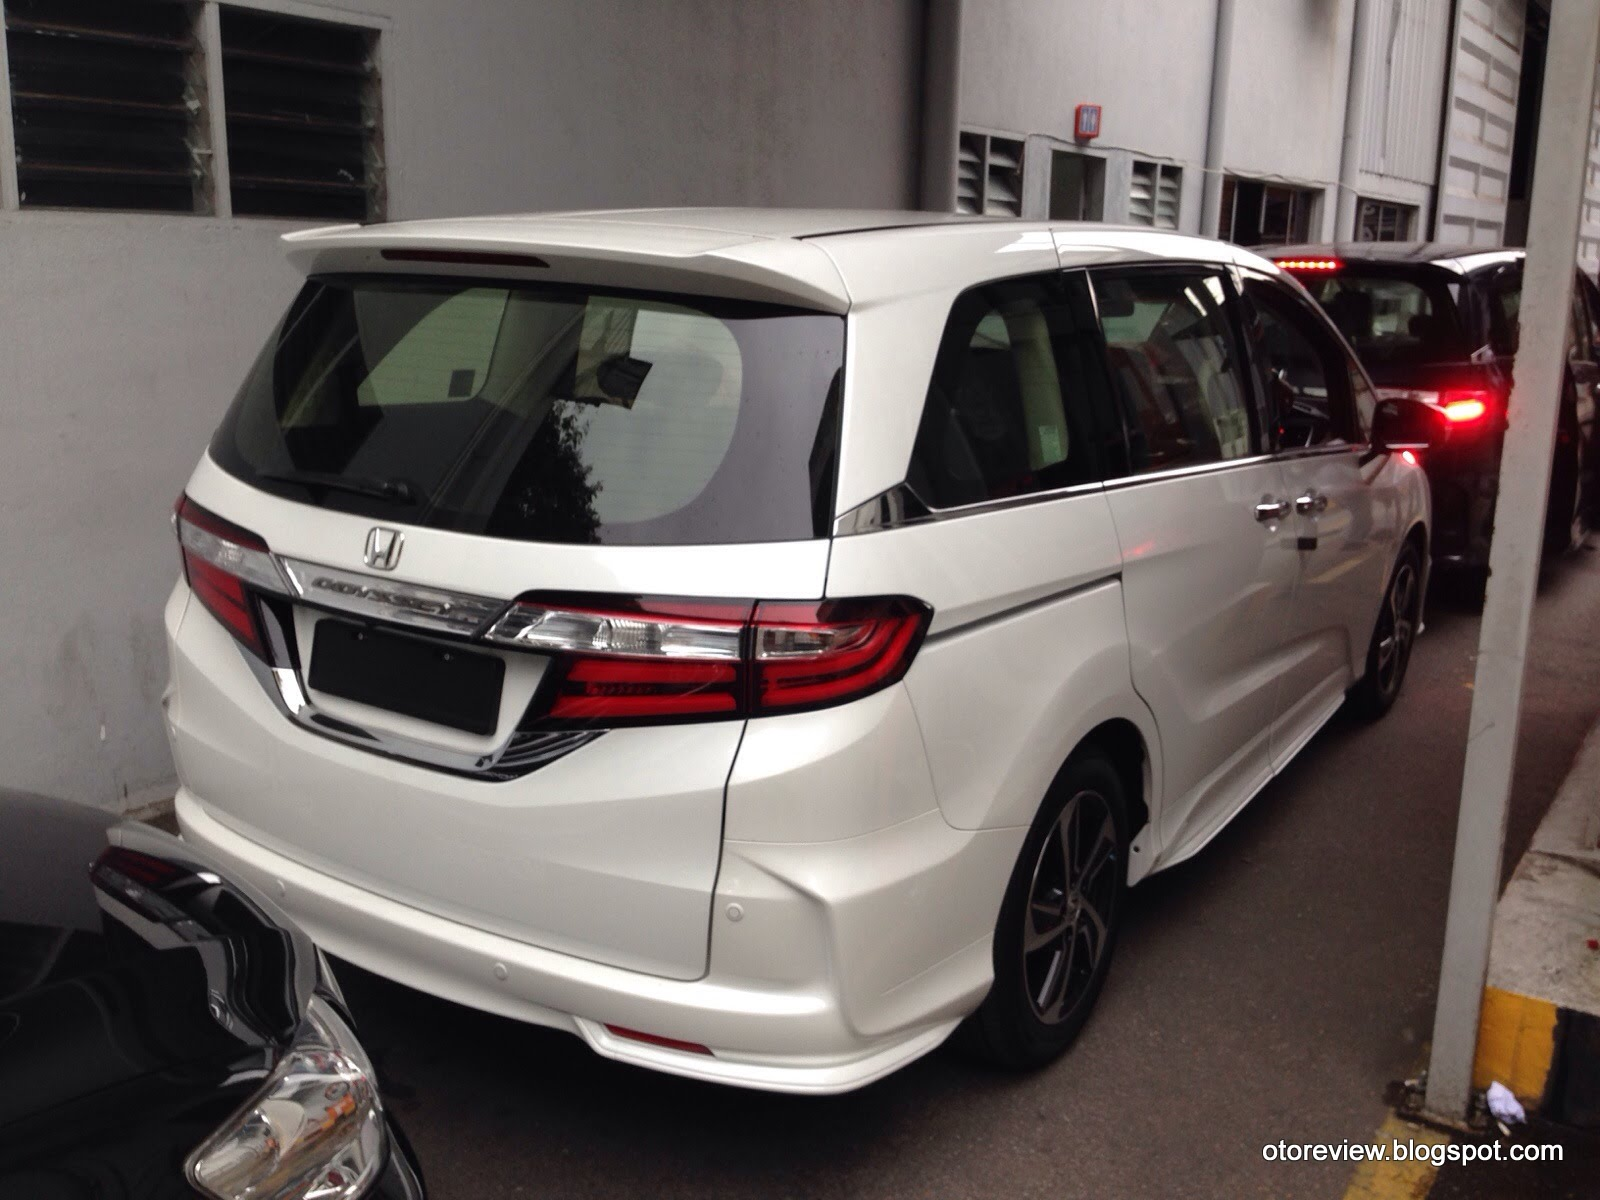 automatic lx small front wheel odyssey select for new van vehicles sale vancouver in drive honda price trim img carter